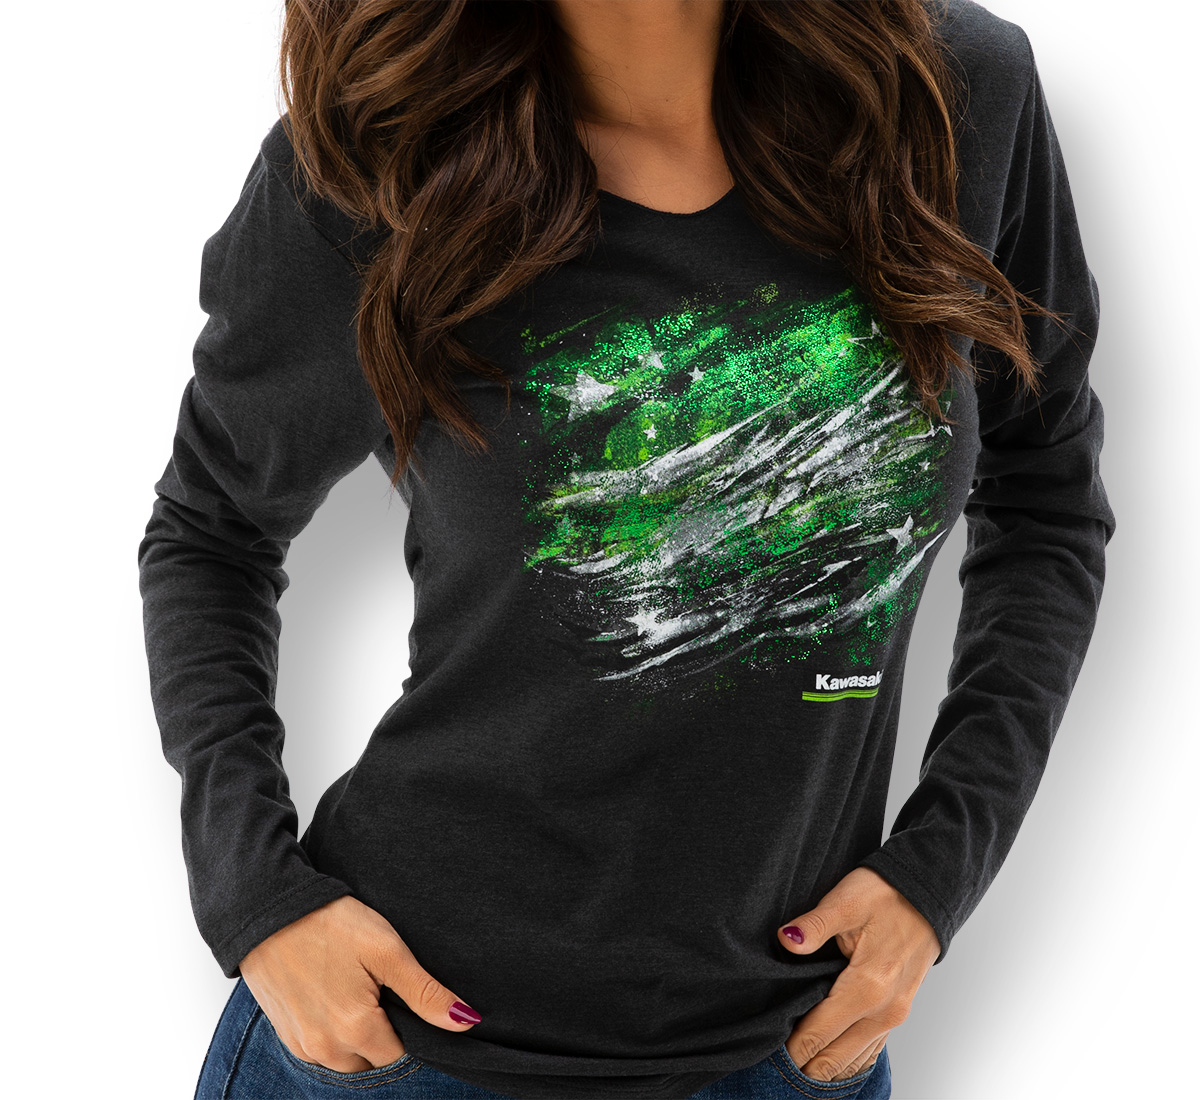 Women's Kawasaki Long Sleeve Hooded Flag Tee